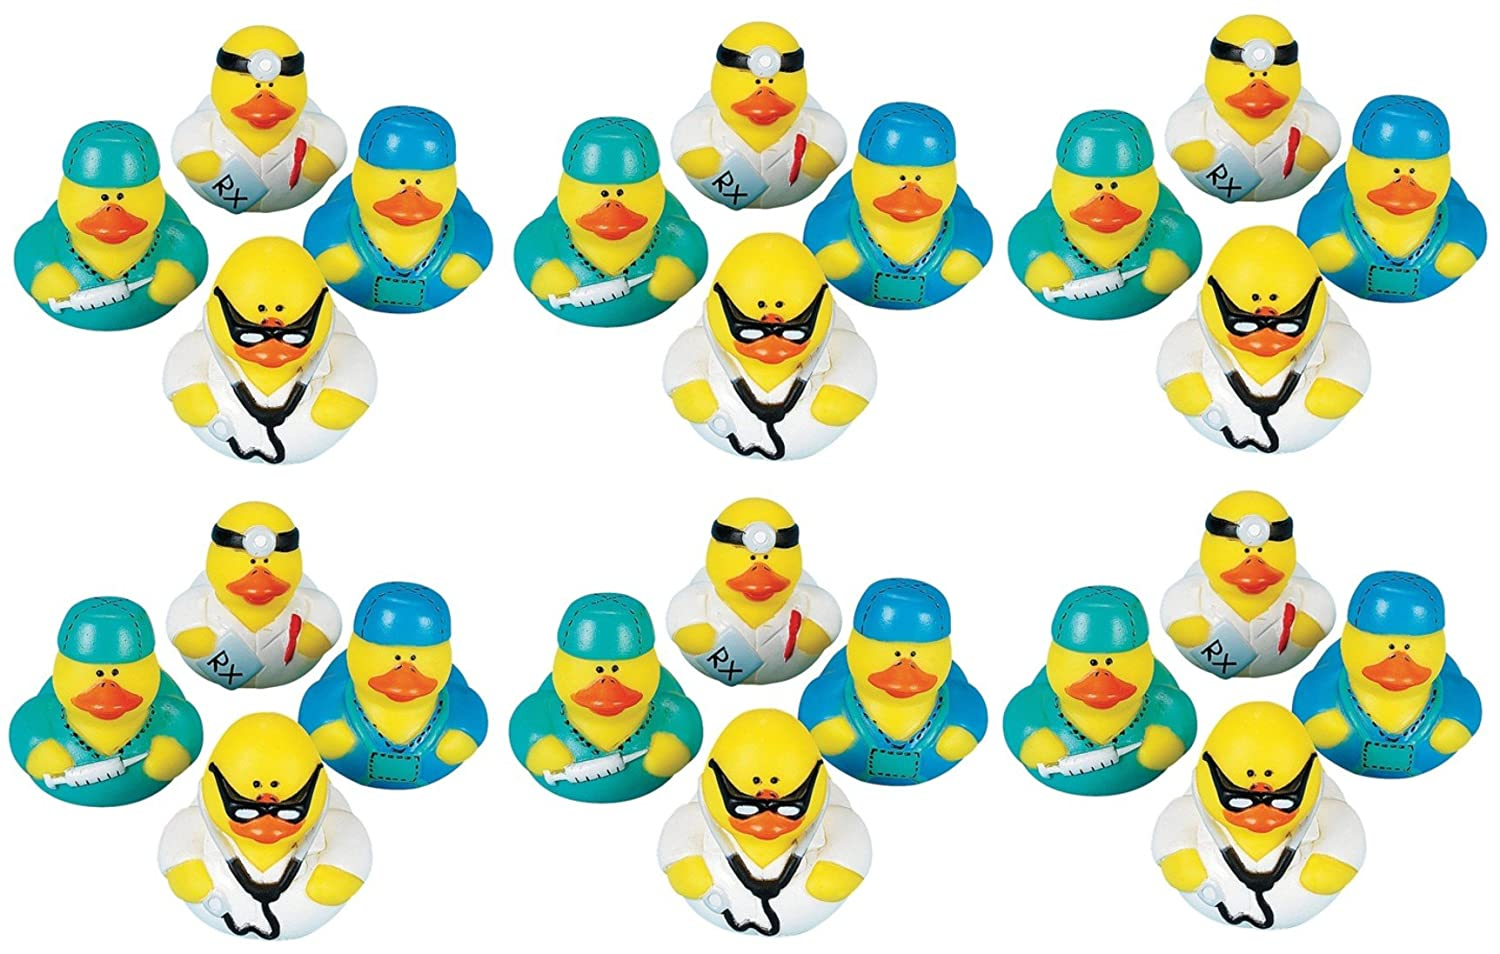 Lot Of 24 Doctor Intern ~ Rubber Ducks ~ Ducky Party Favors //Gifts FX SG/_B00LNJF1GK/_US